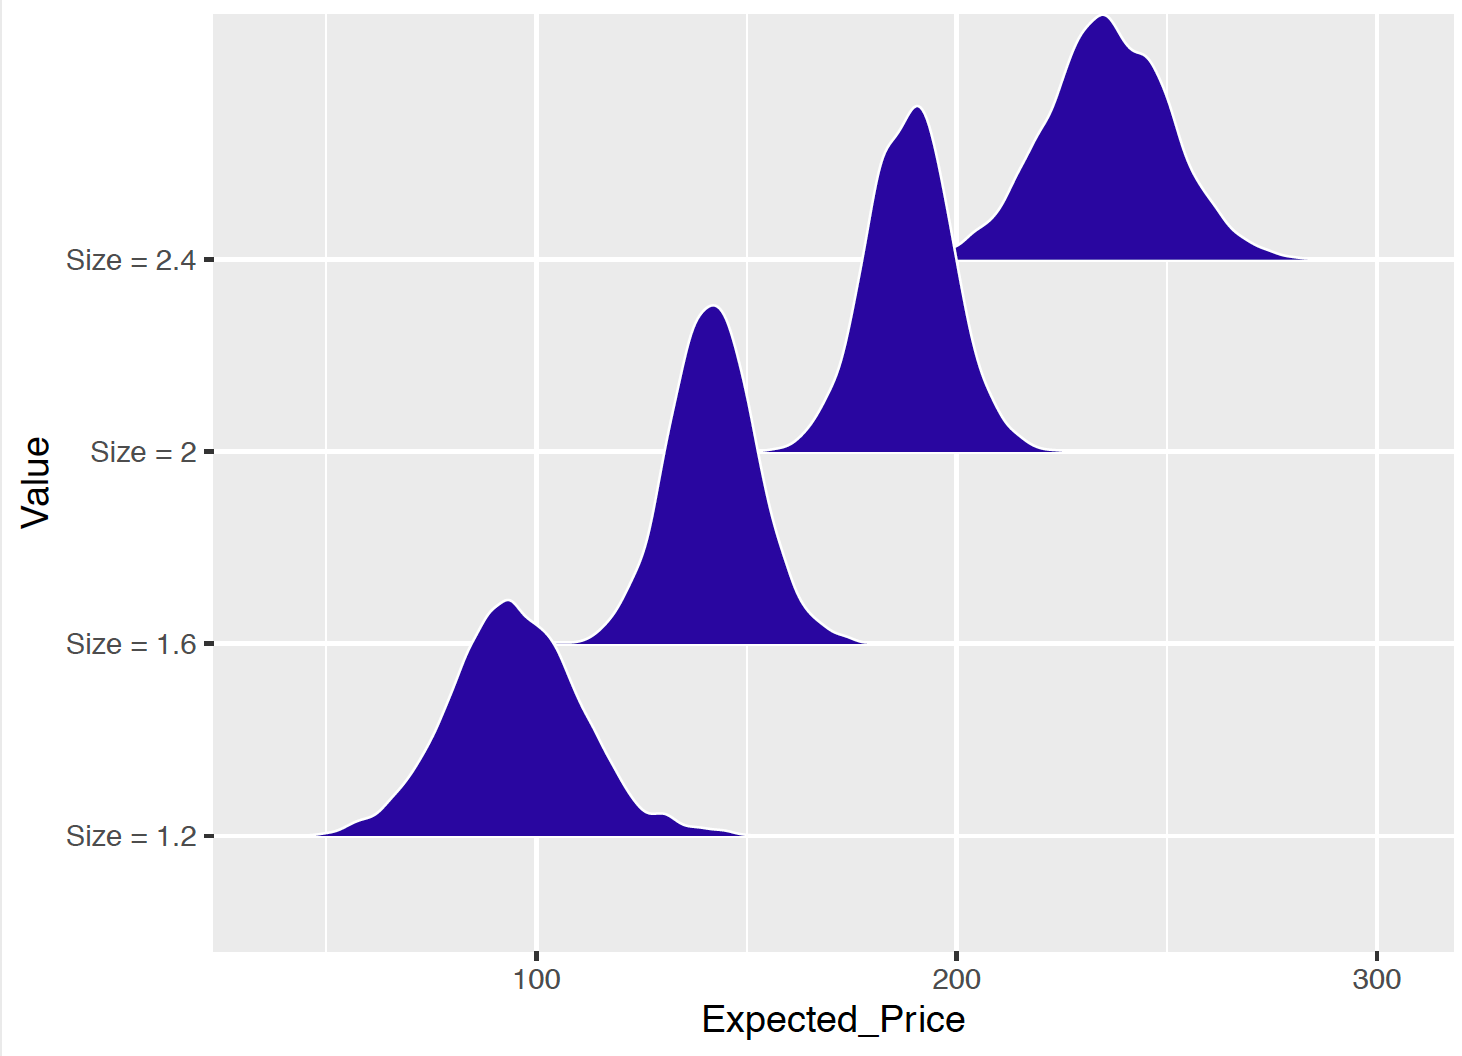 Density plots of the simulated draws of the posterior expected  house price for four different values of the house size.